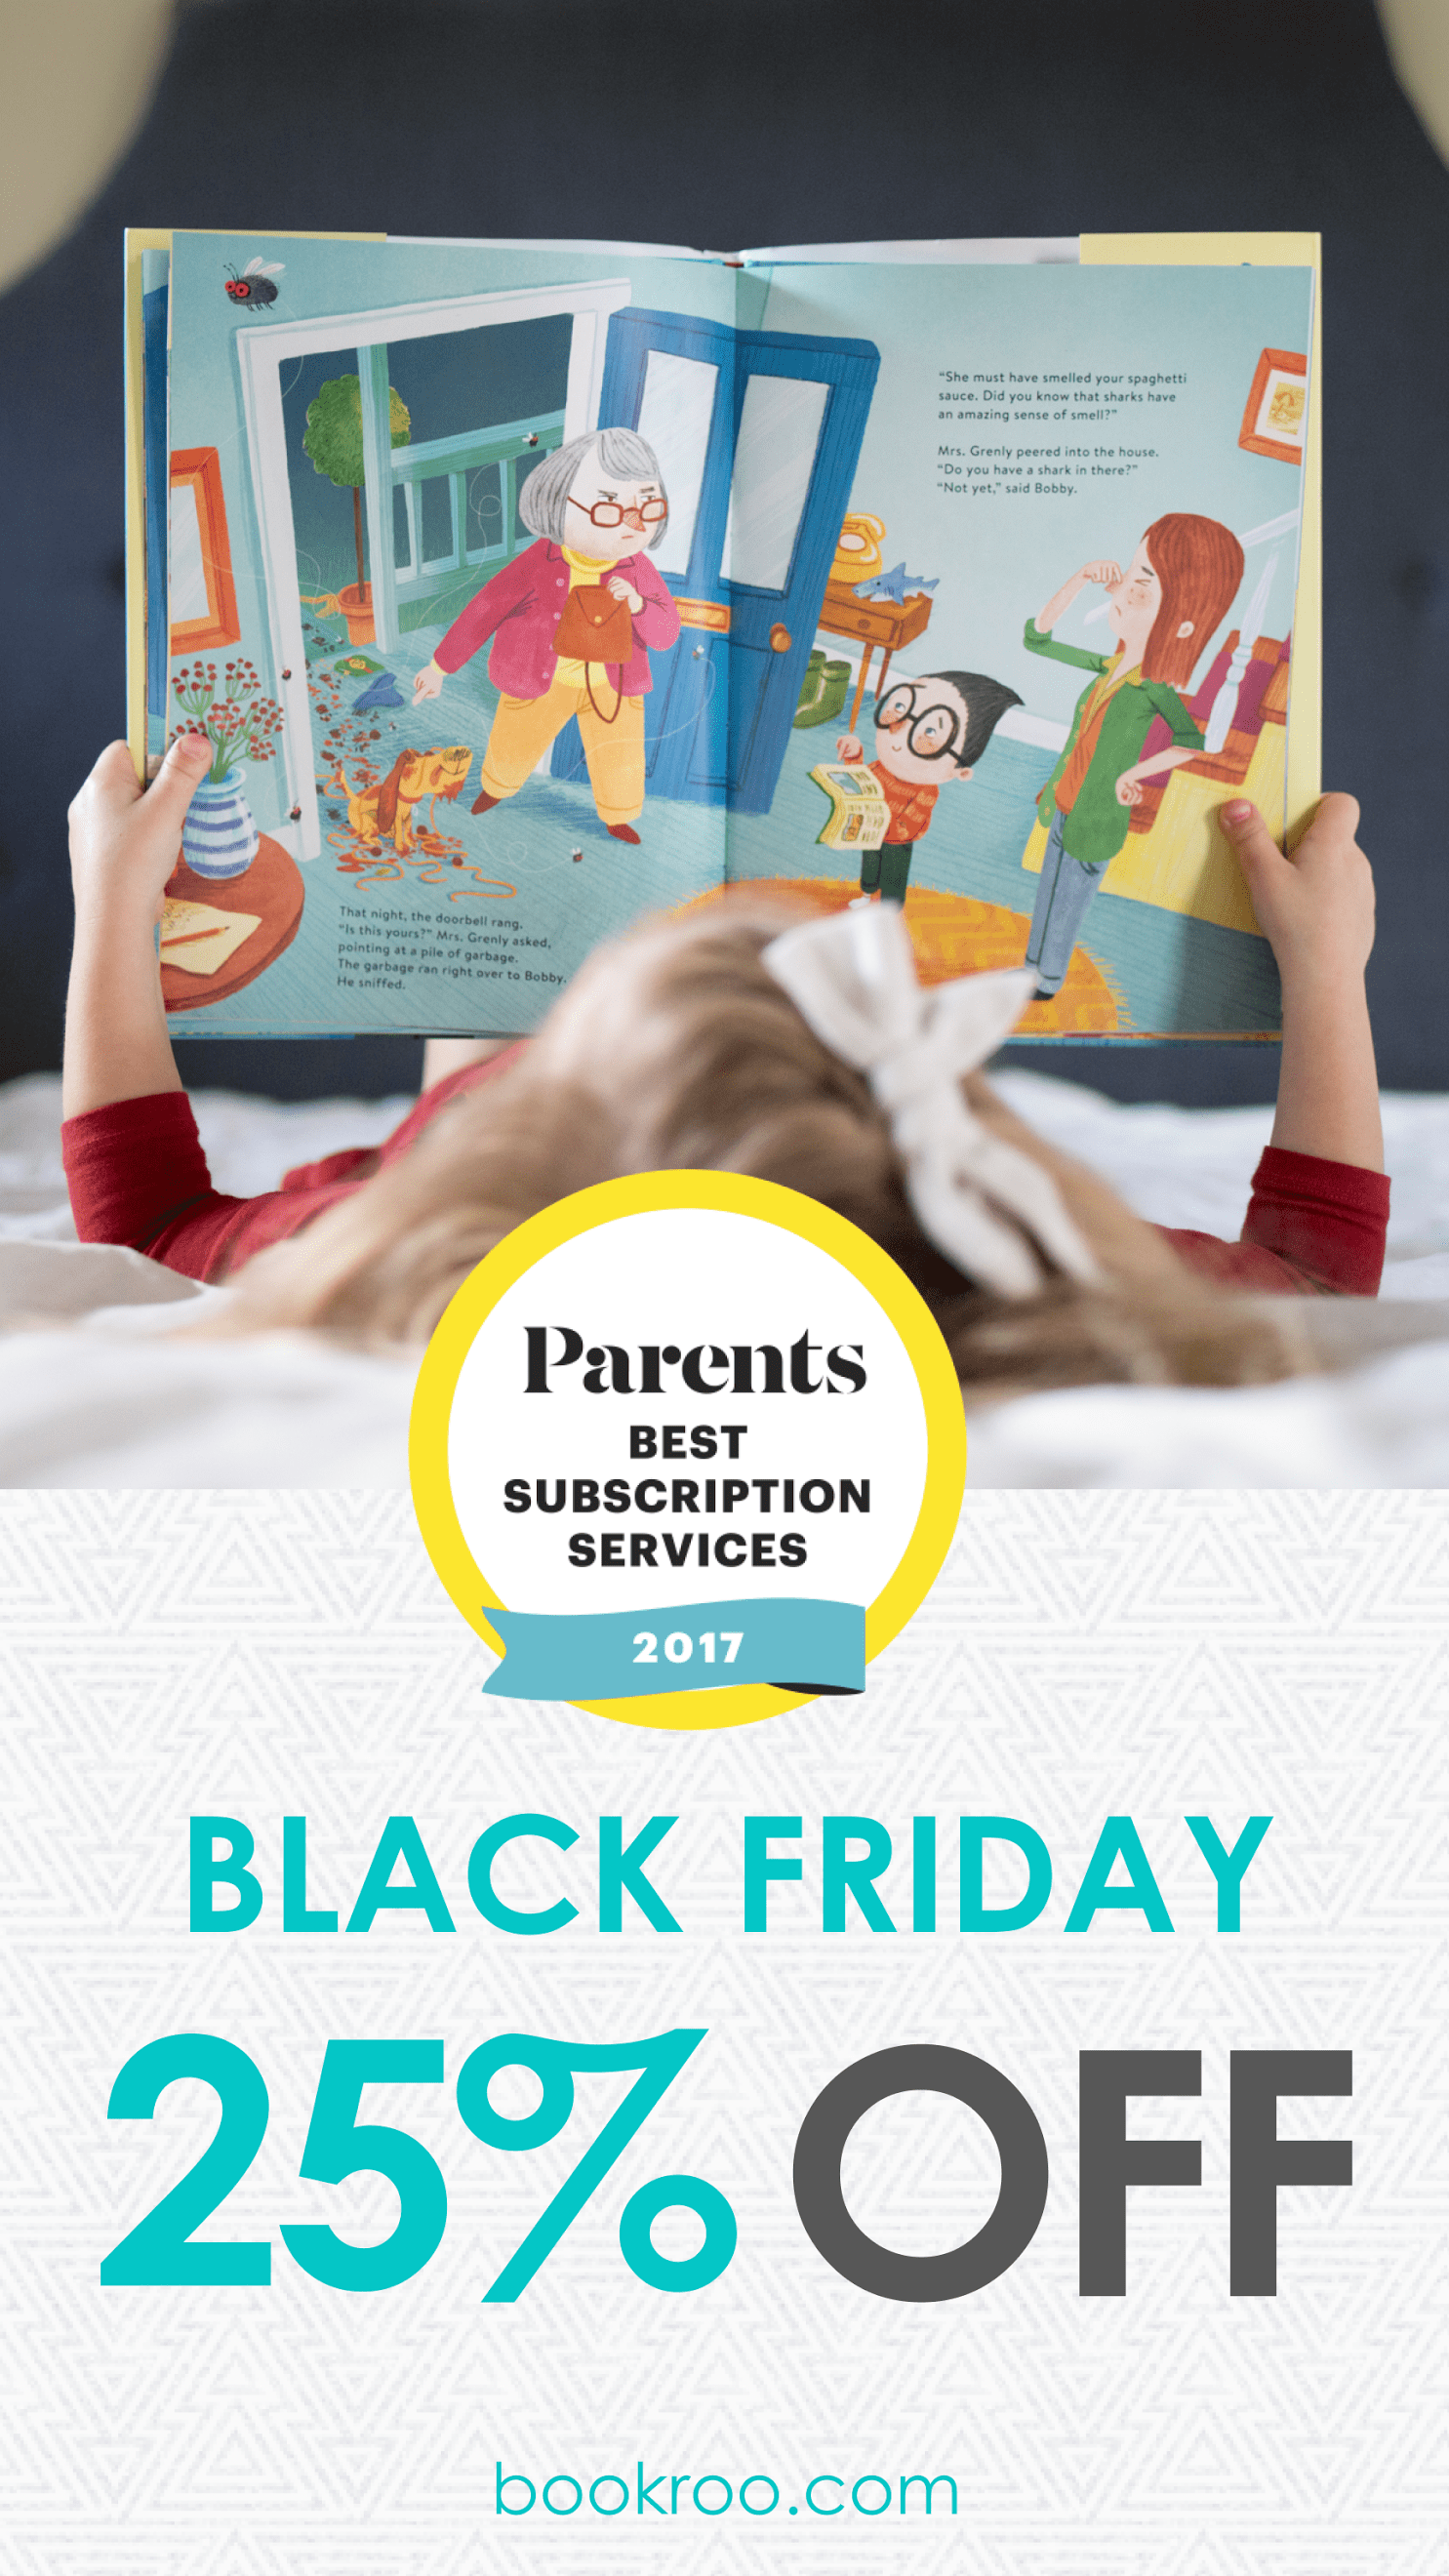 Bookroo 2017 Black Friday Deal: 25% Off!